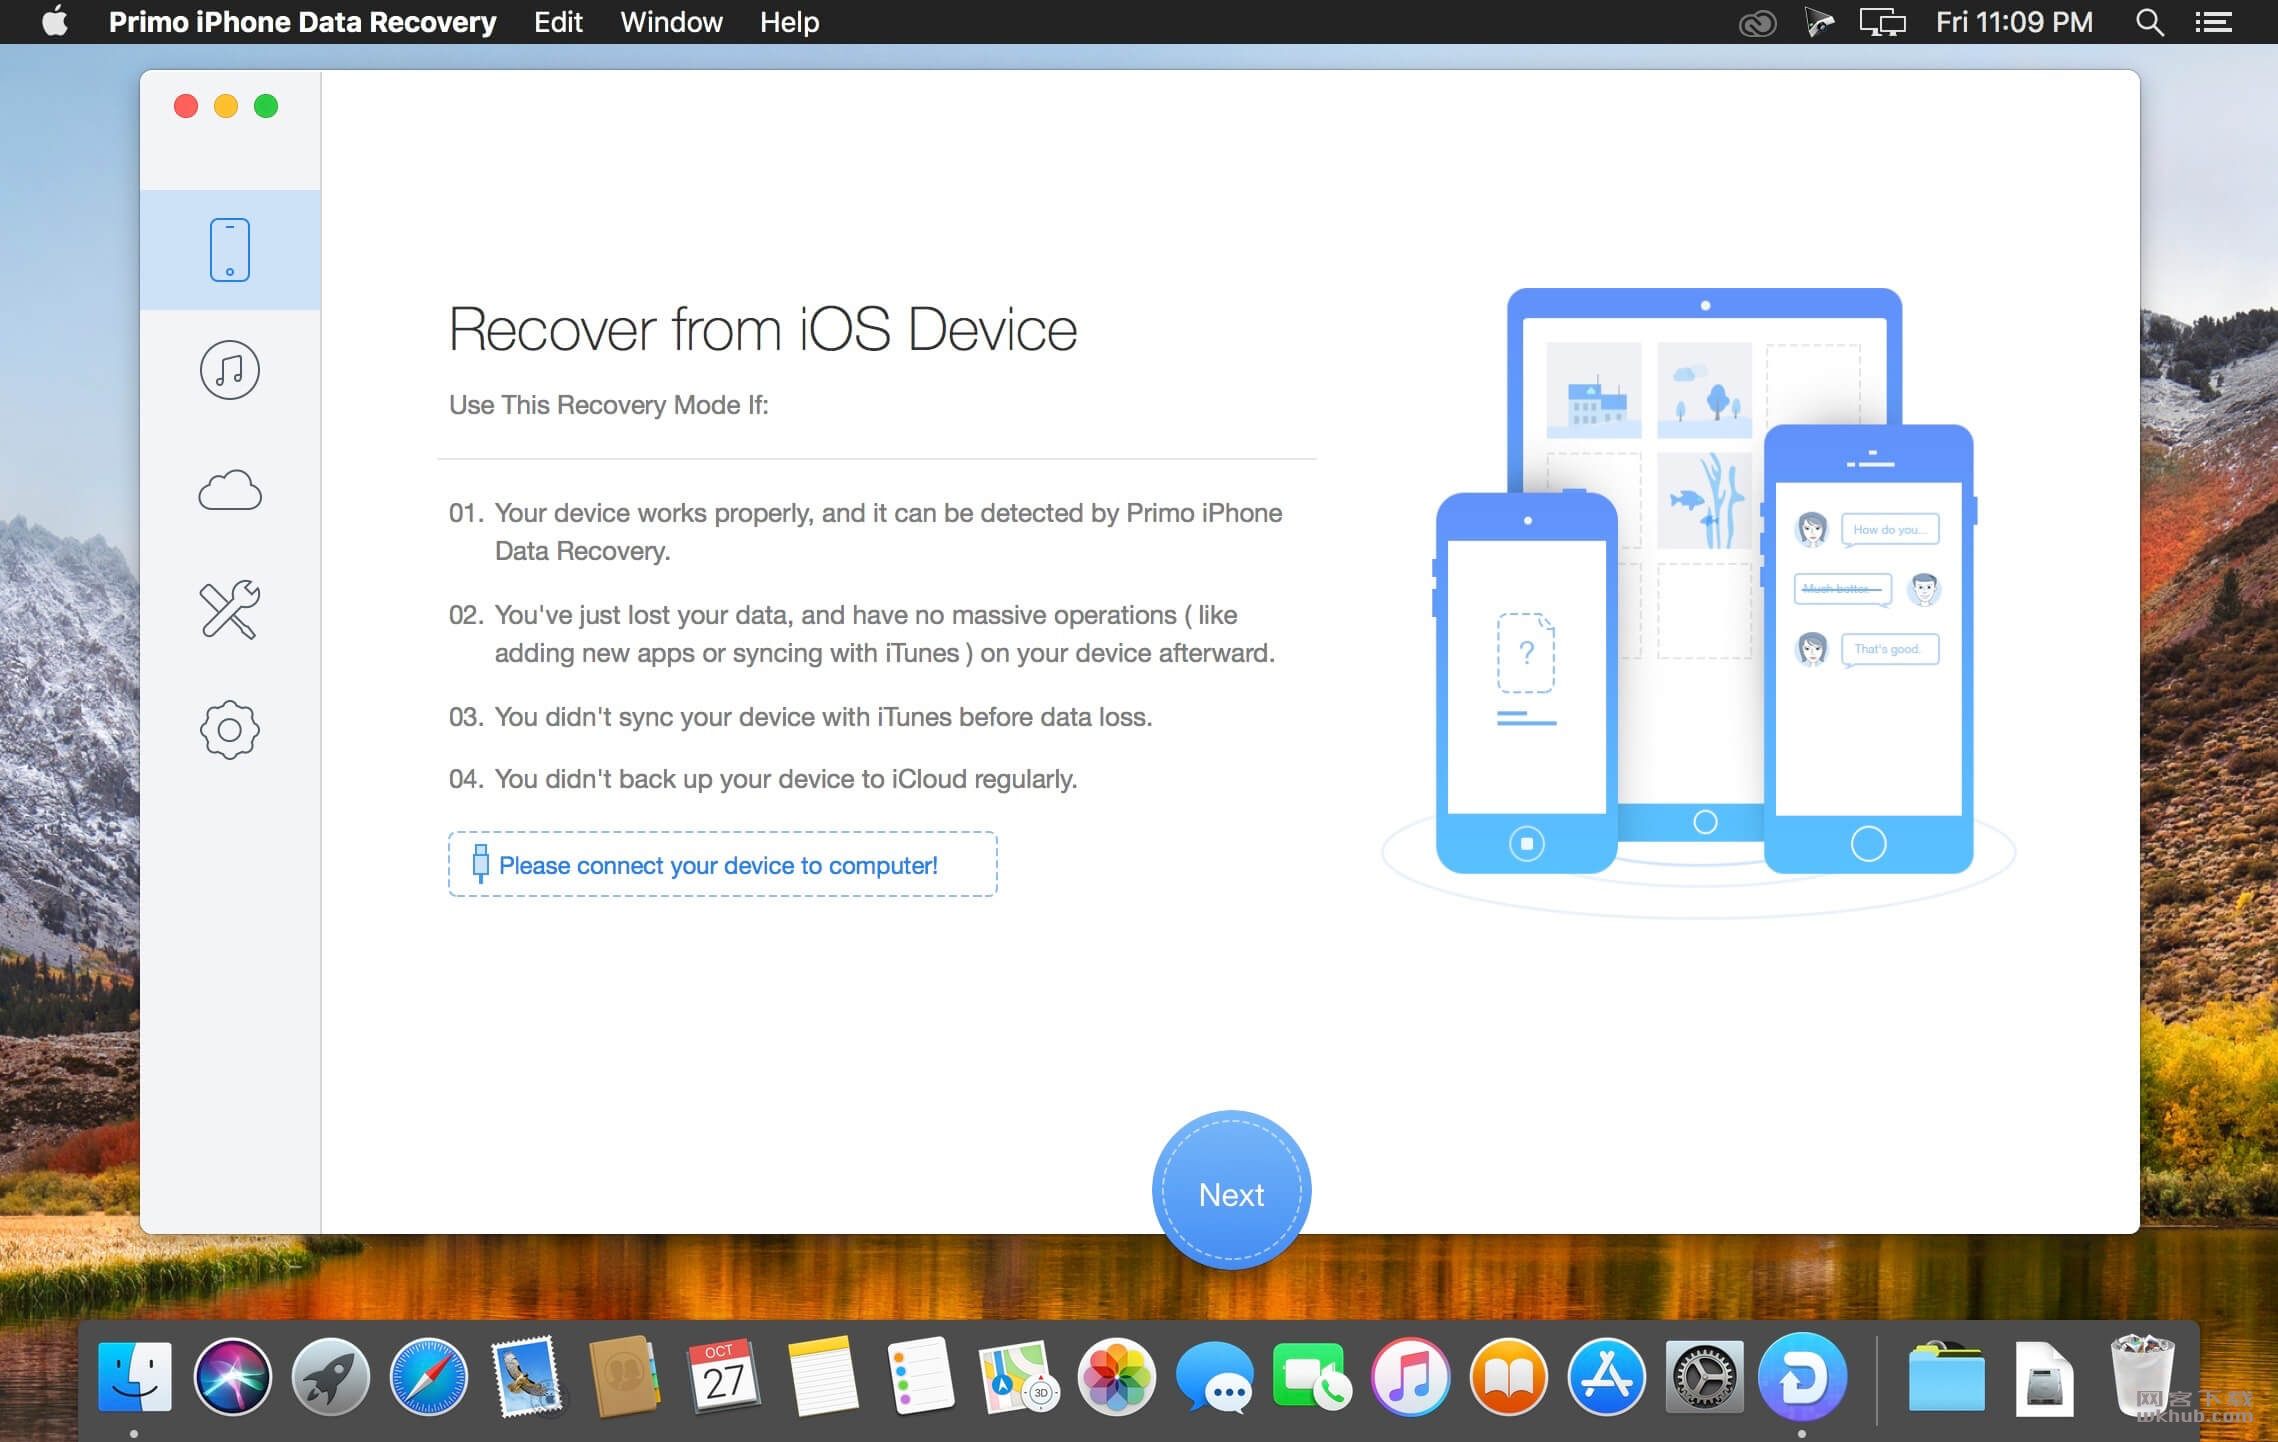 Primo iPhone Data Recovery 2.3.0 iOS设备数据恢复工具